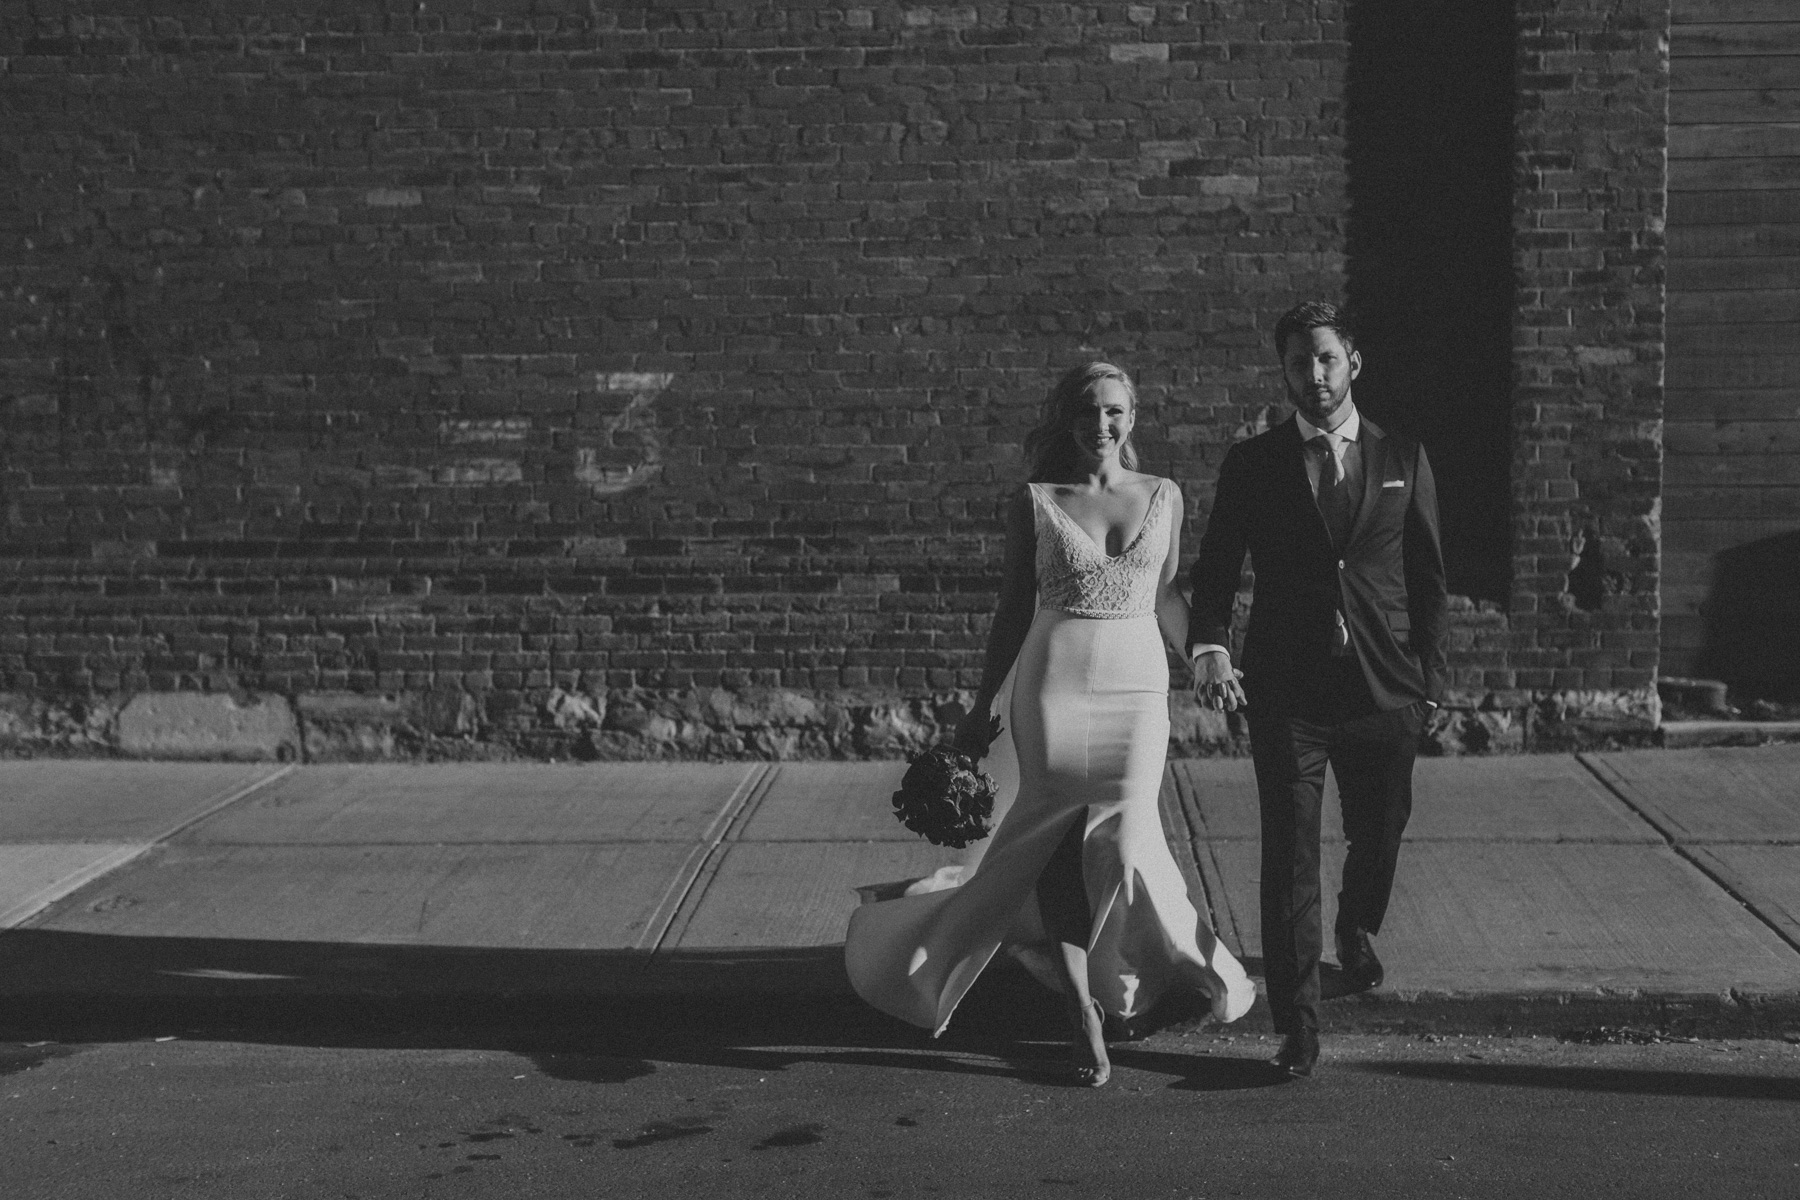 Thompson-Landry-Gallery-wedding-photos-Toronto-by-Sam-Wong-of-Artanis-Collective-Polina-Zarko_0040.jpg